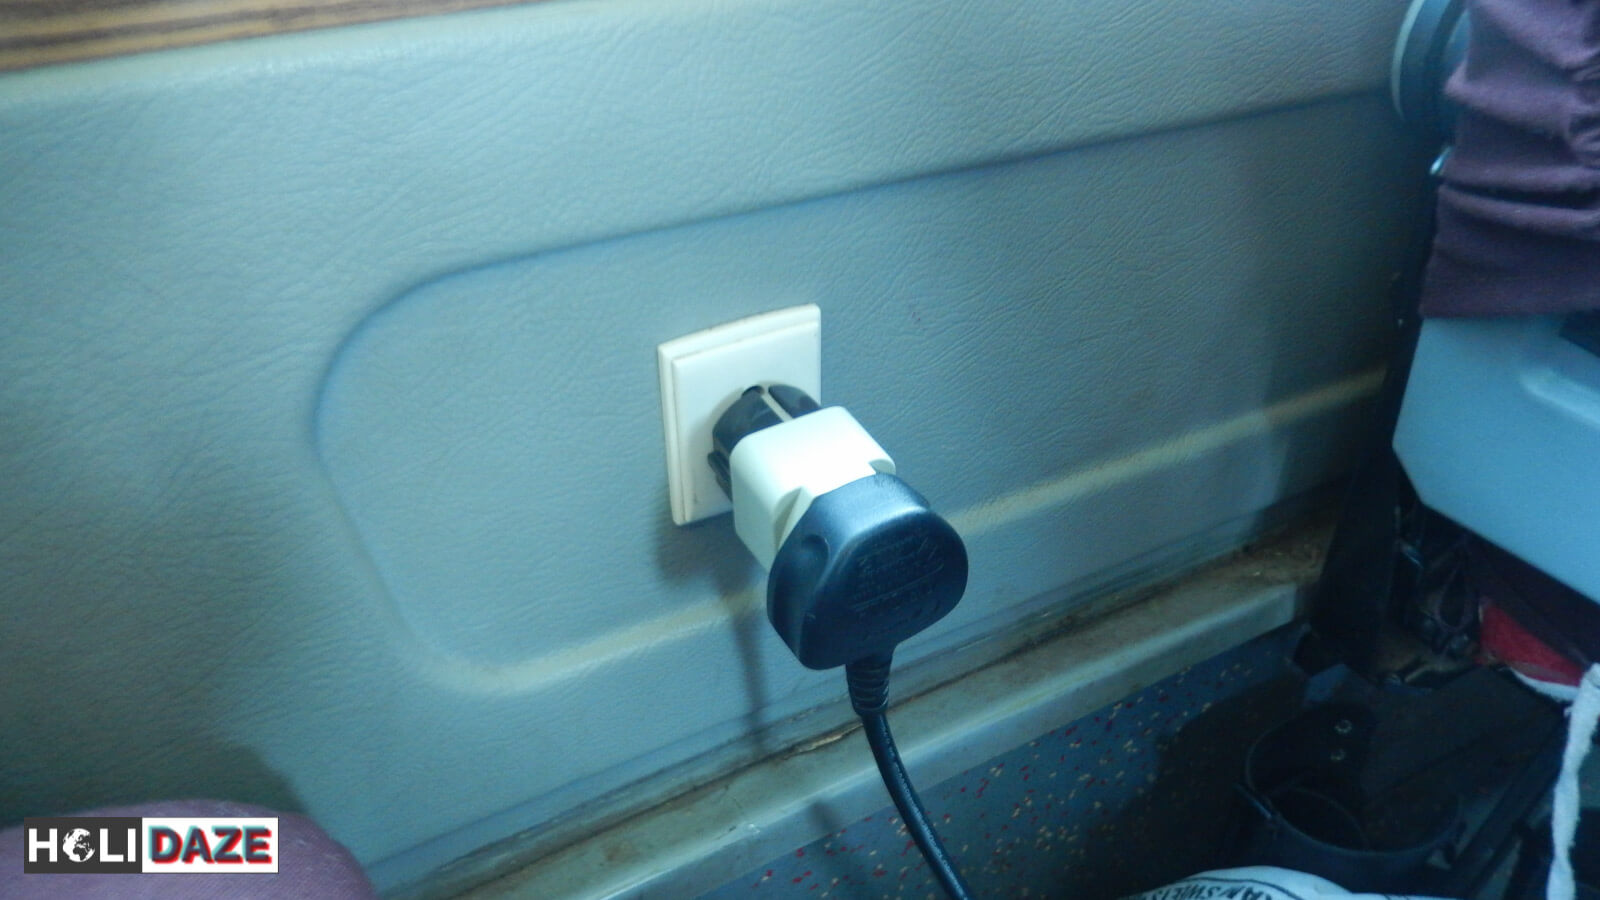 Working power sockets on the DTC Delhi-Kathmandu express Mercedes bus to Nepal. Best way to travel from Delhi to Kathmandu is by bus.